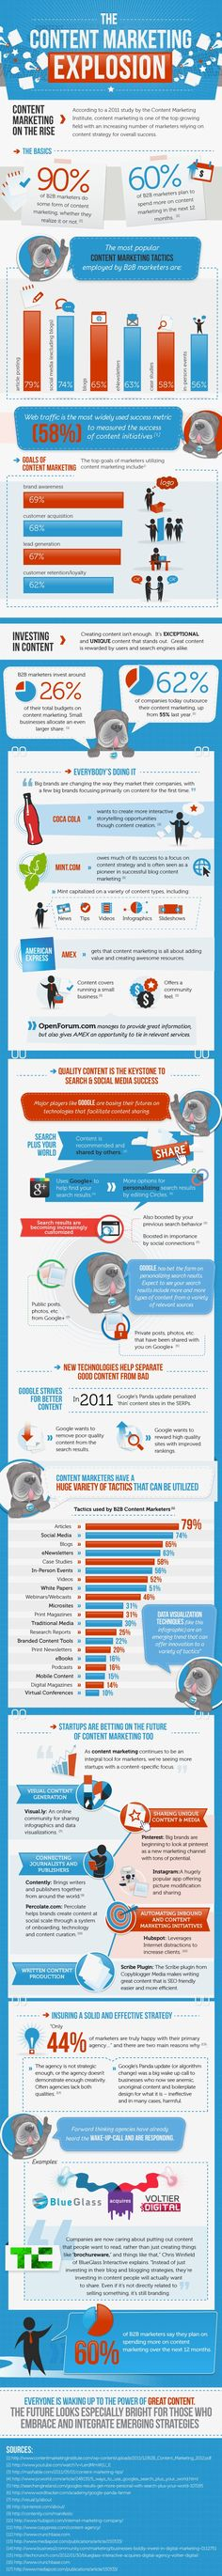 Good content makes it all in digital marketing